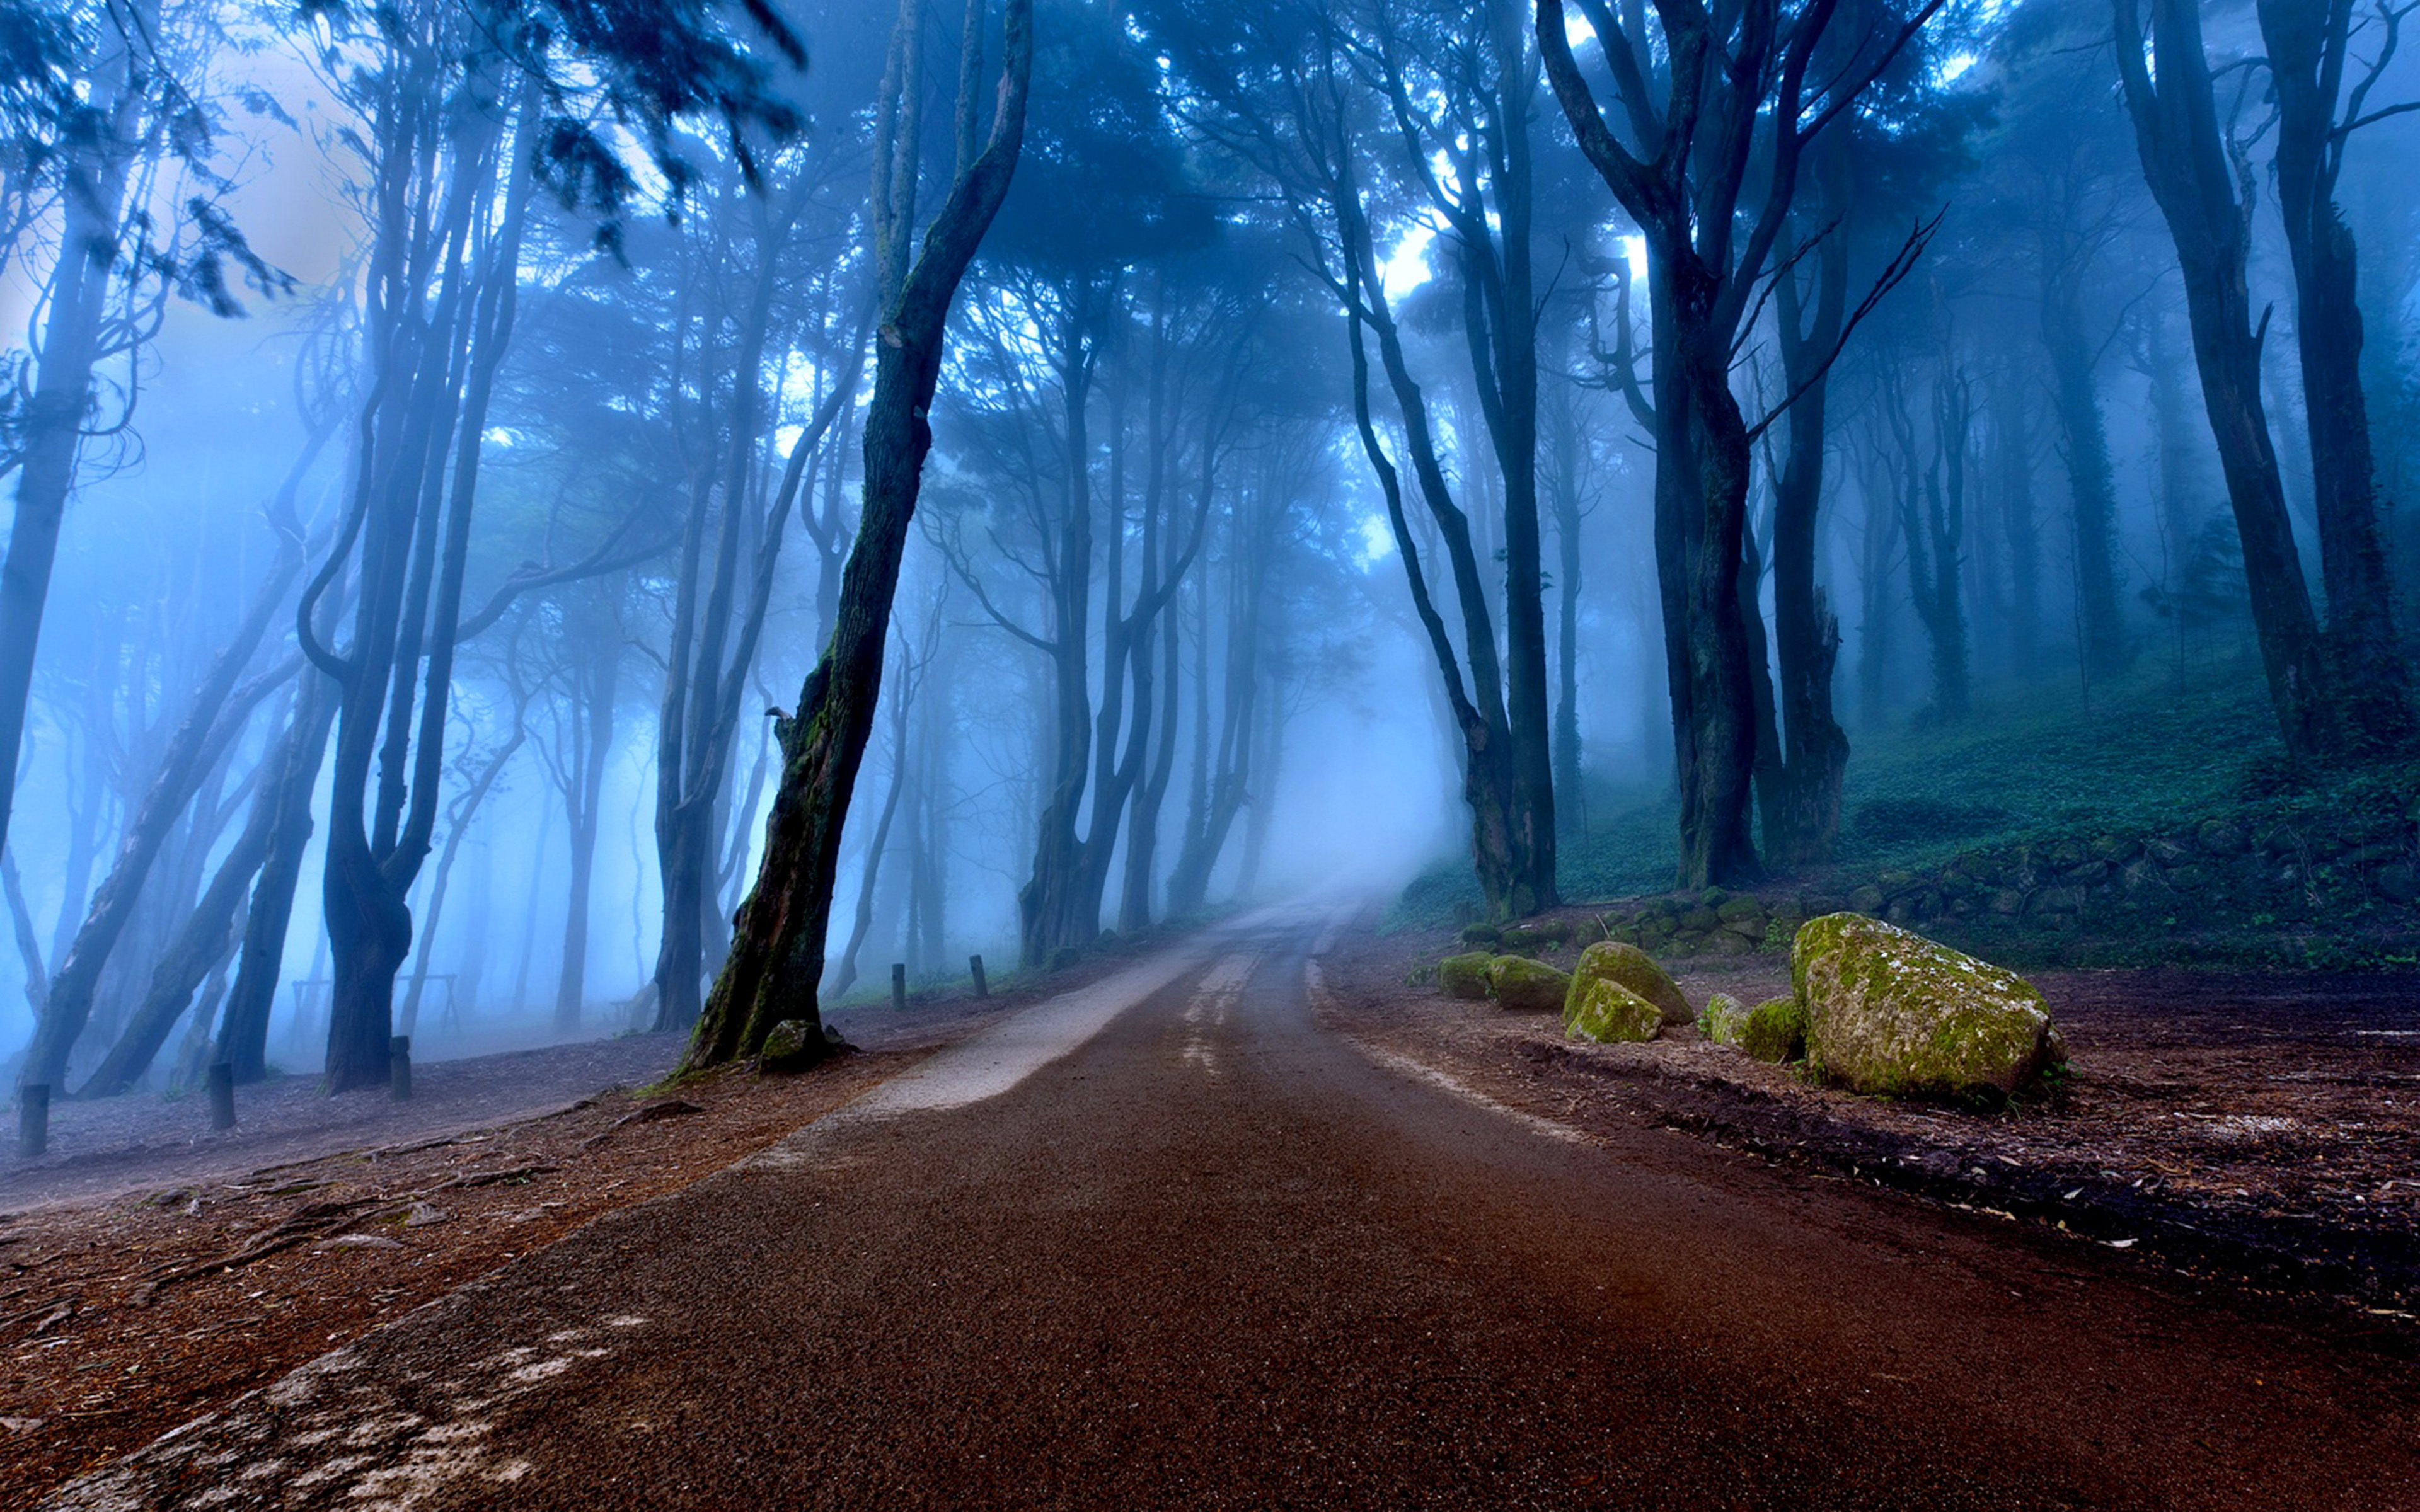 Paisajes Wallpapers Full Hd Landscapes Of Portugal Autumn Road Forest With Tall Trees